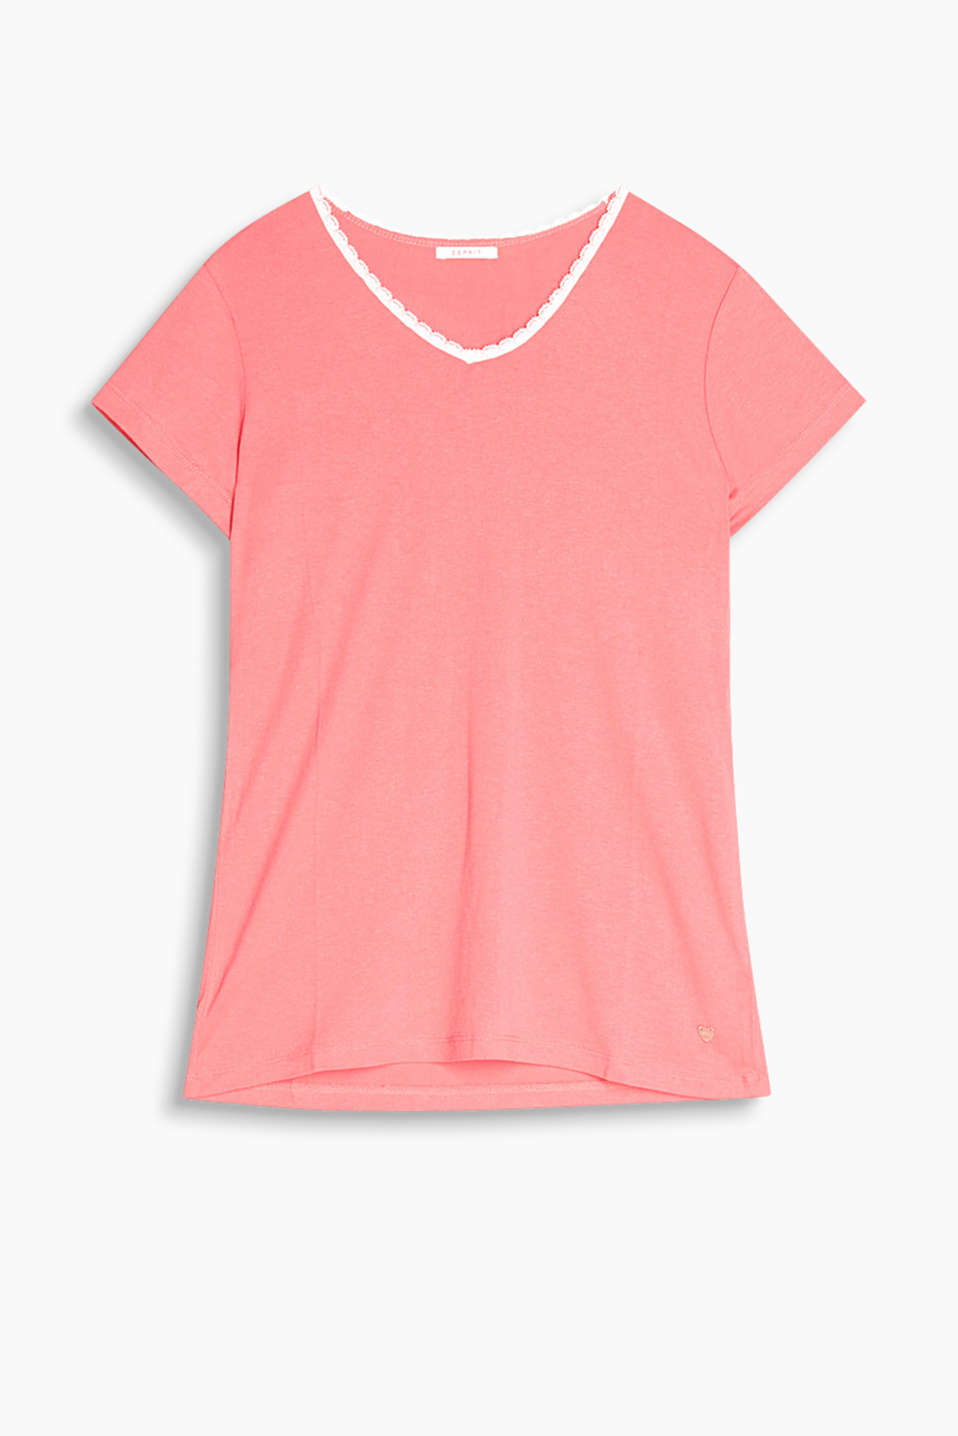 Pyjama top in flowing stretch jersey with lace piping on the V-neckline